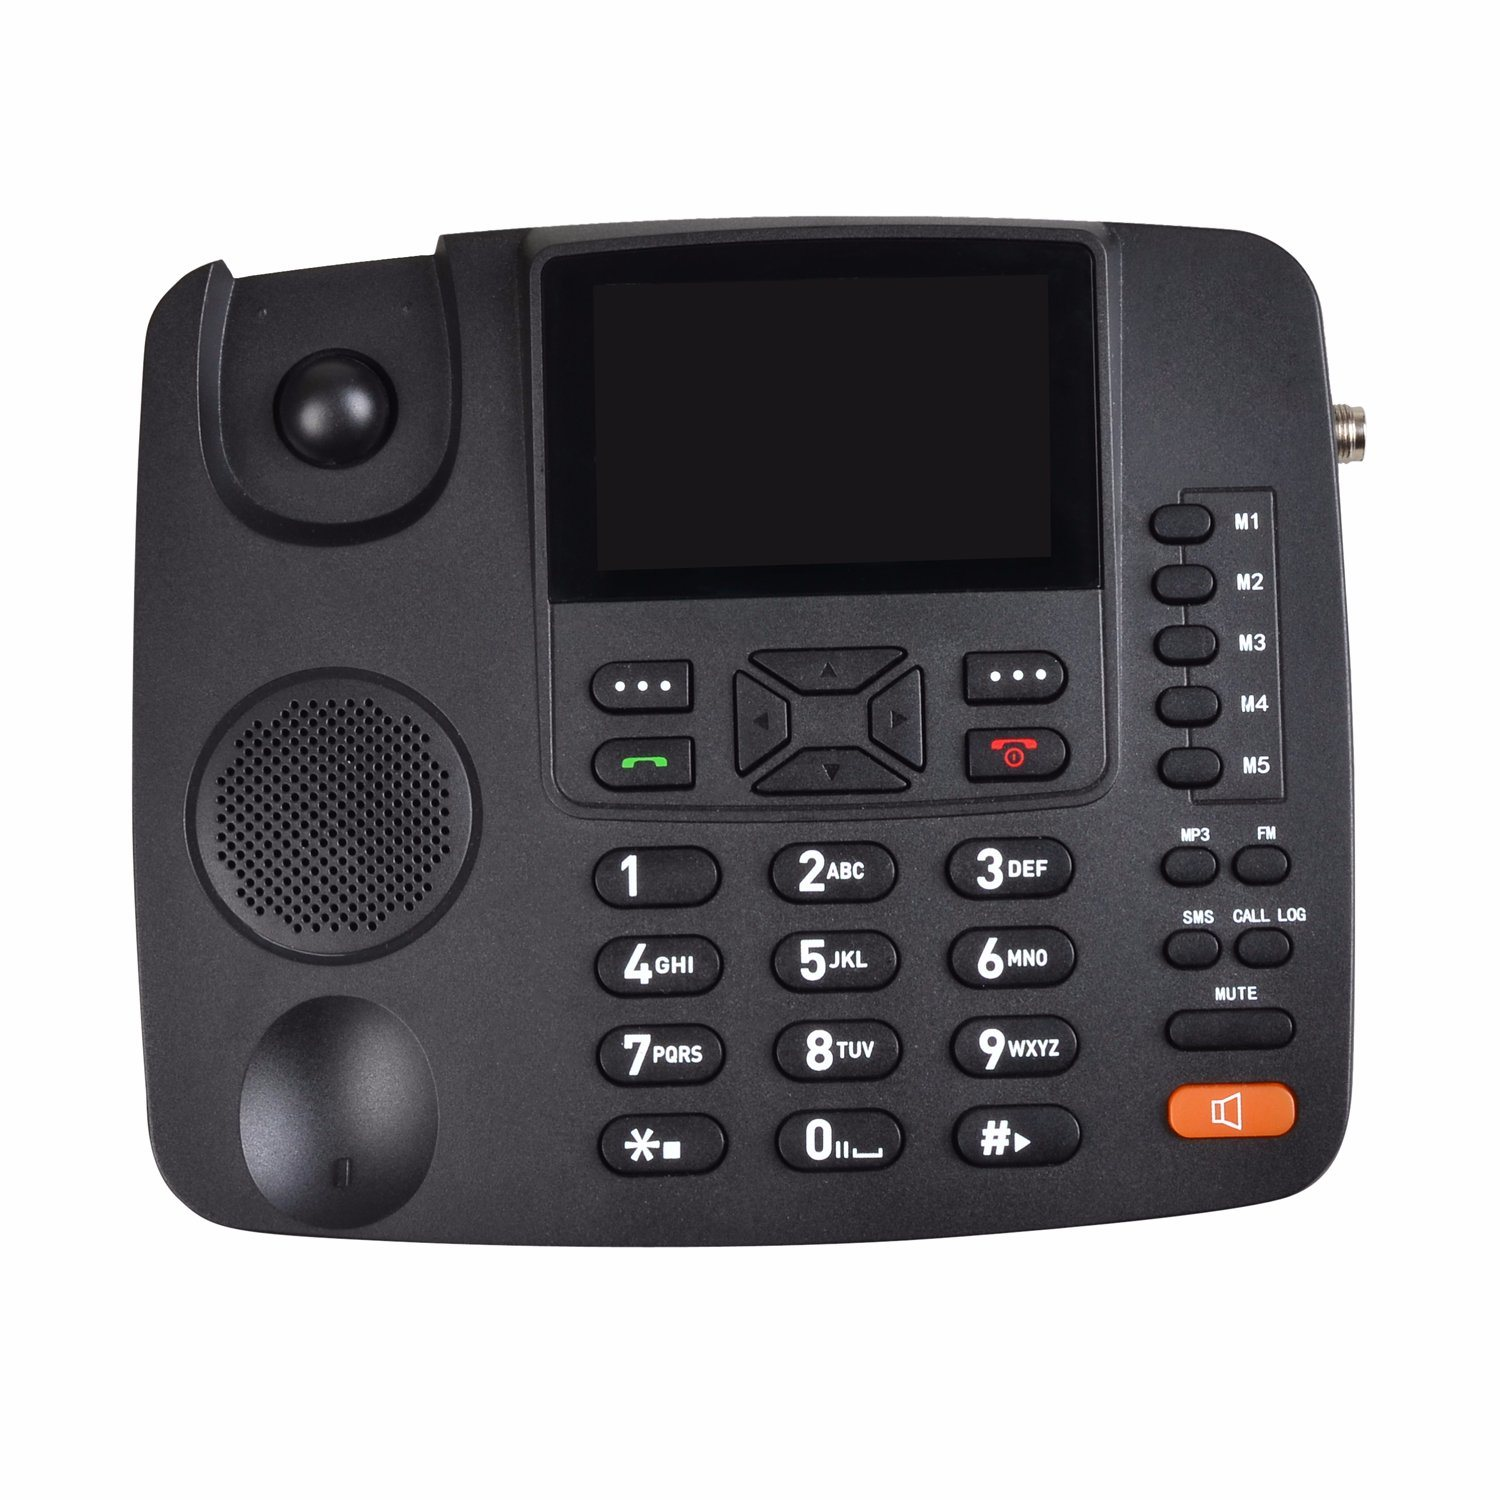 2g Wireless Phone Dual SIM Table Phone GSM Fwp G659 Supports TNC Antenna